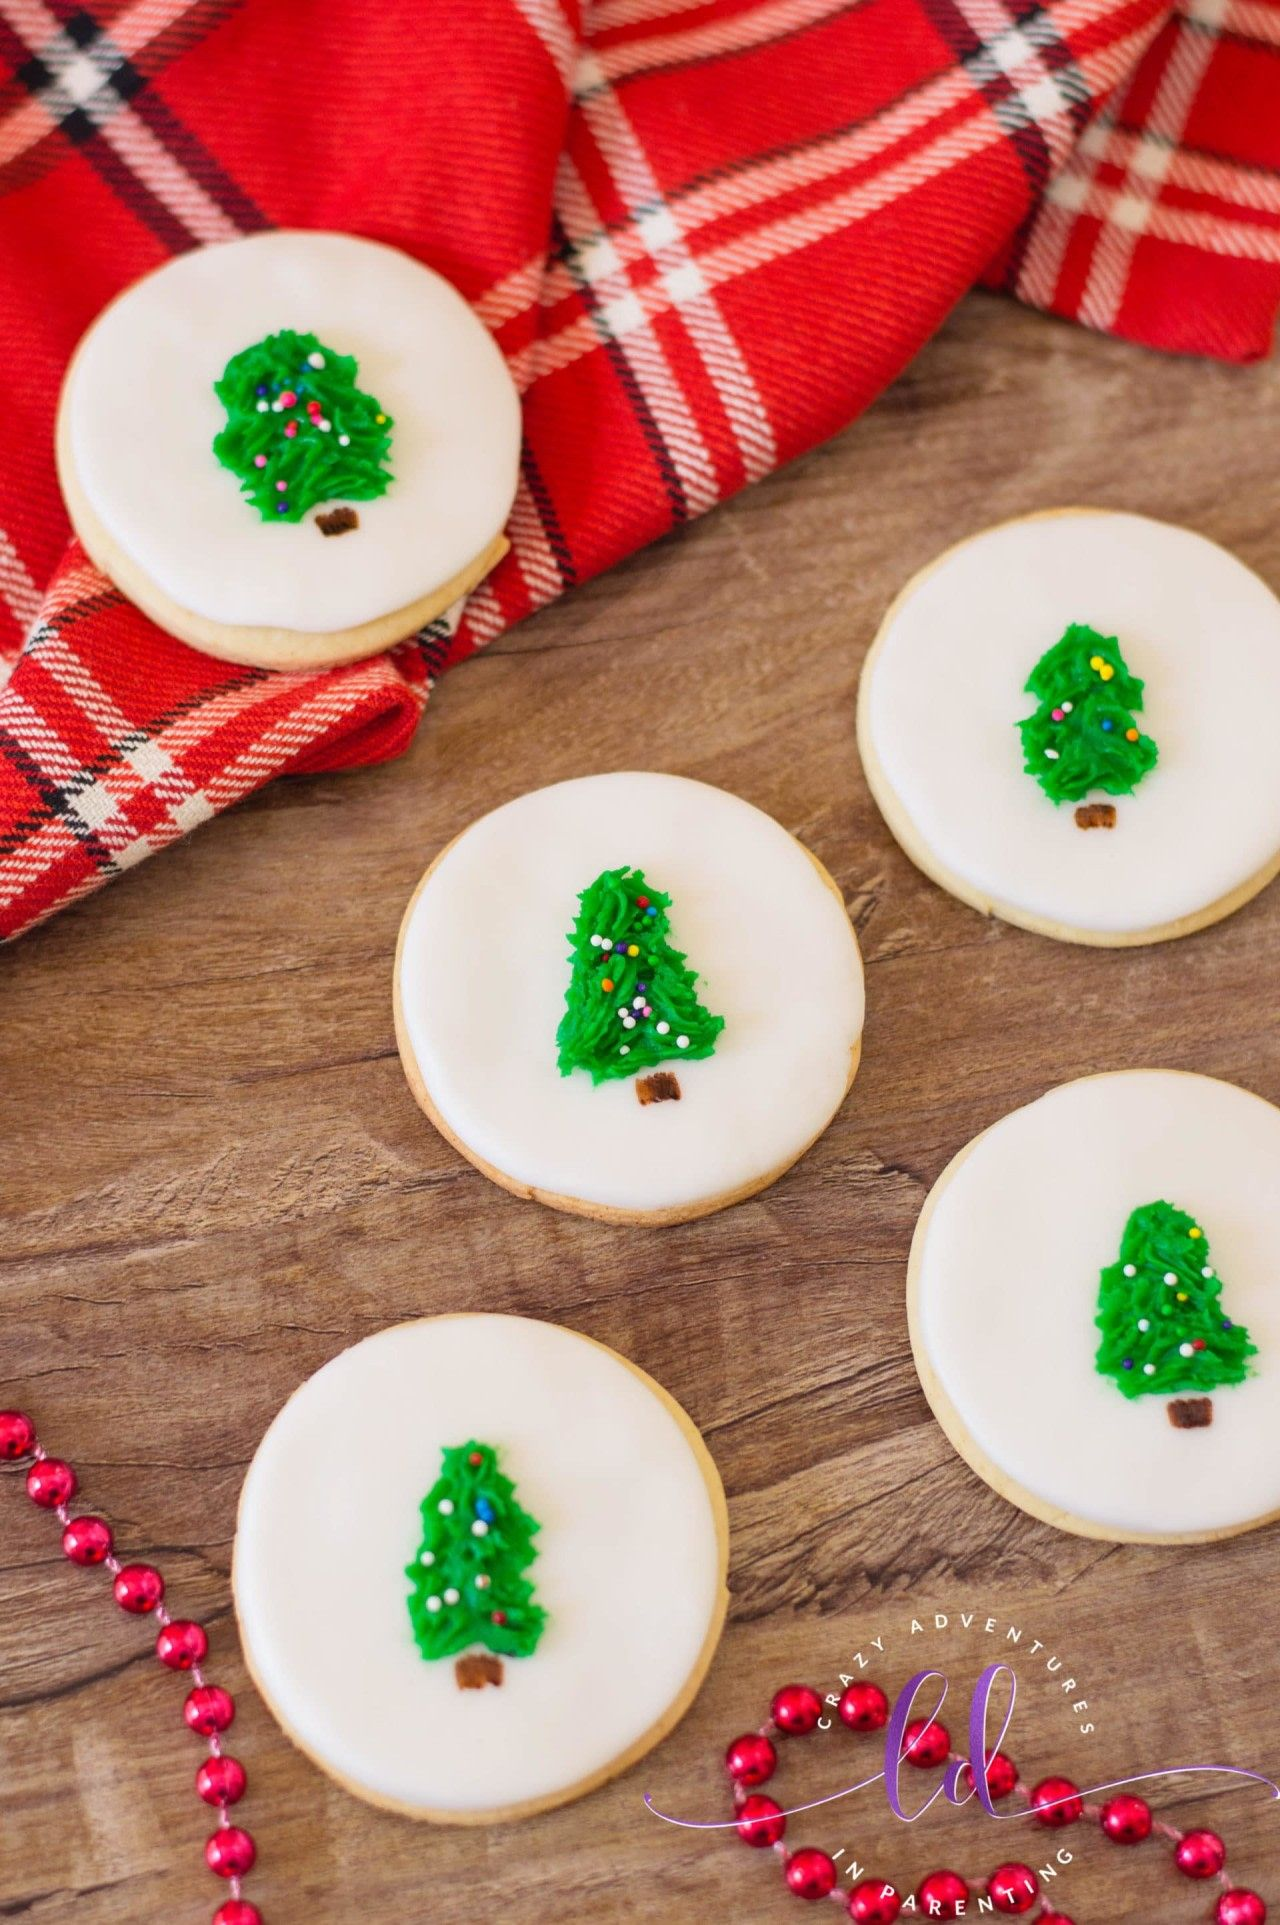 Easy Christmas Tree Cookies Recipe With Images Christmas Tree Cookie Recipes Christmas Tree Cookies Cute Christmas Cookies